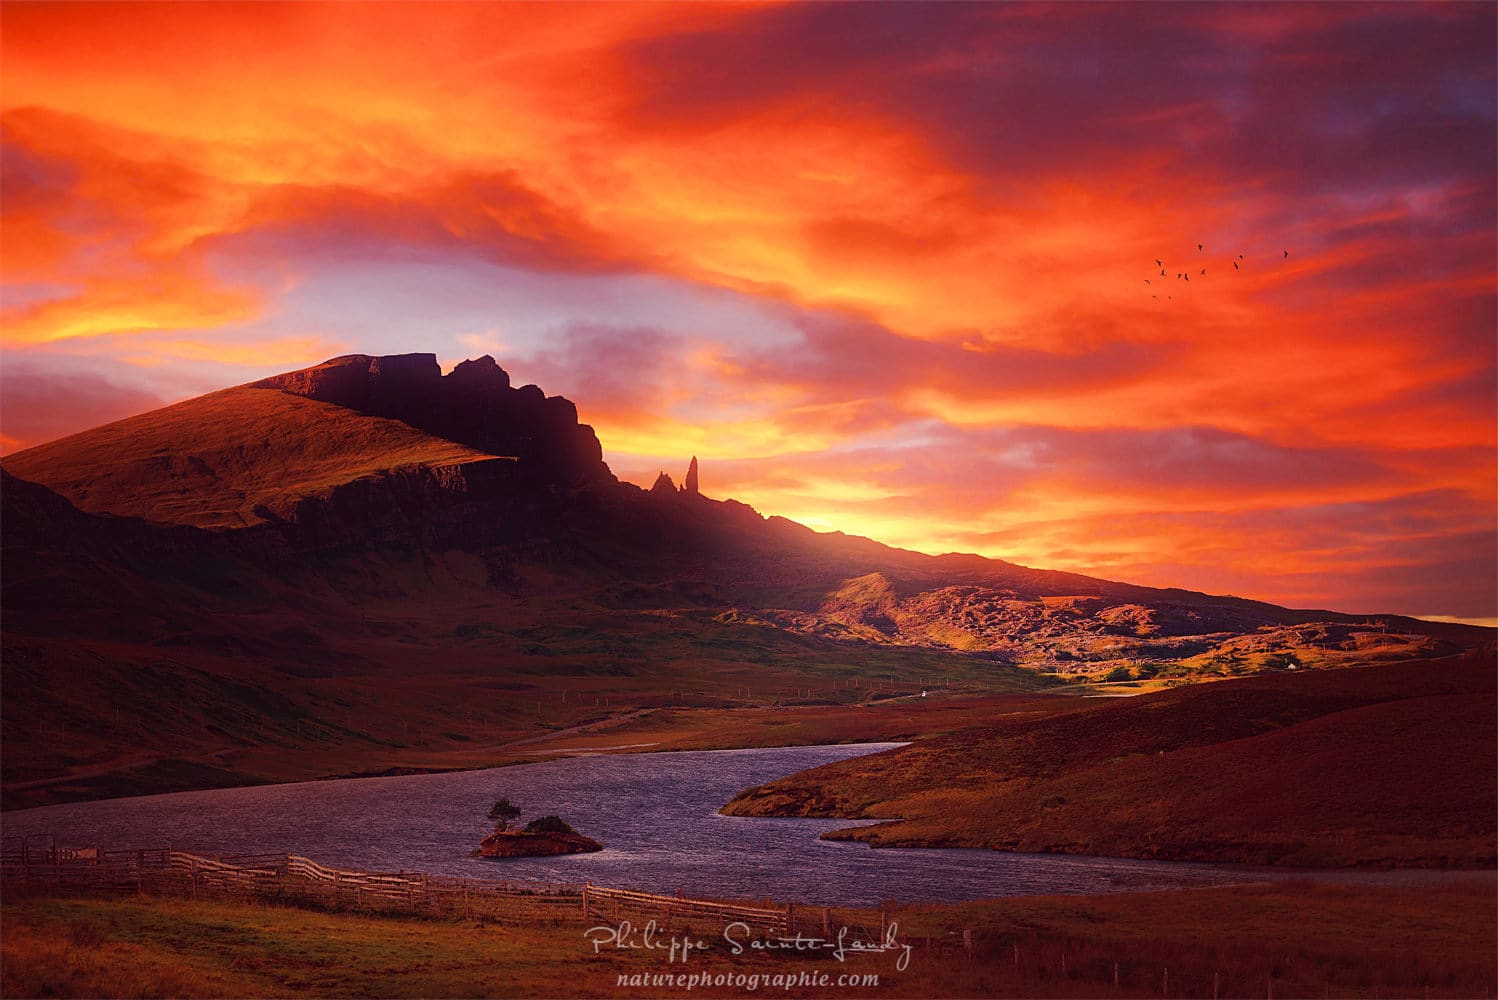 Old Man of Storr on Fire